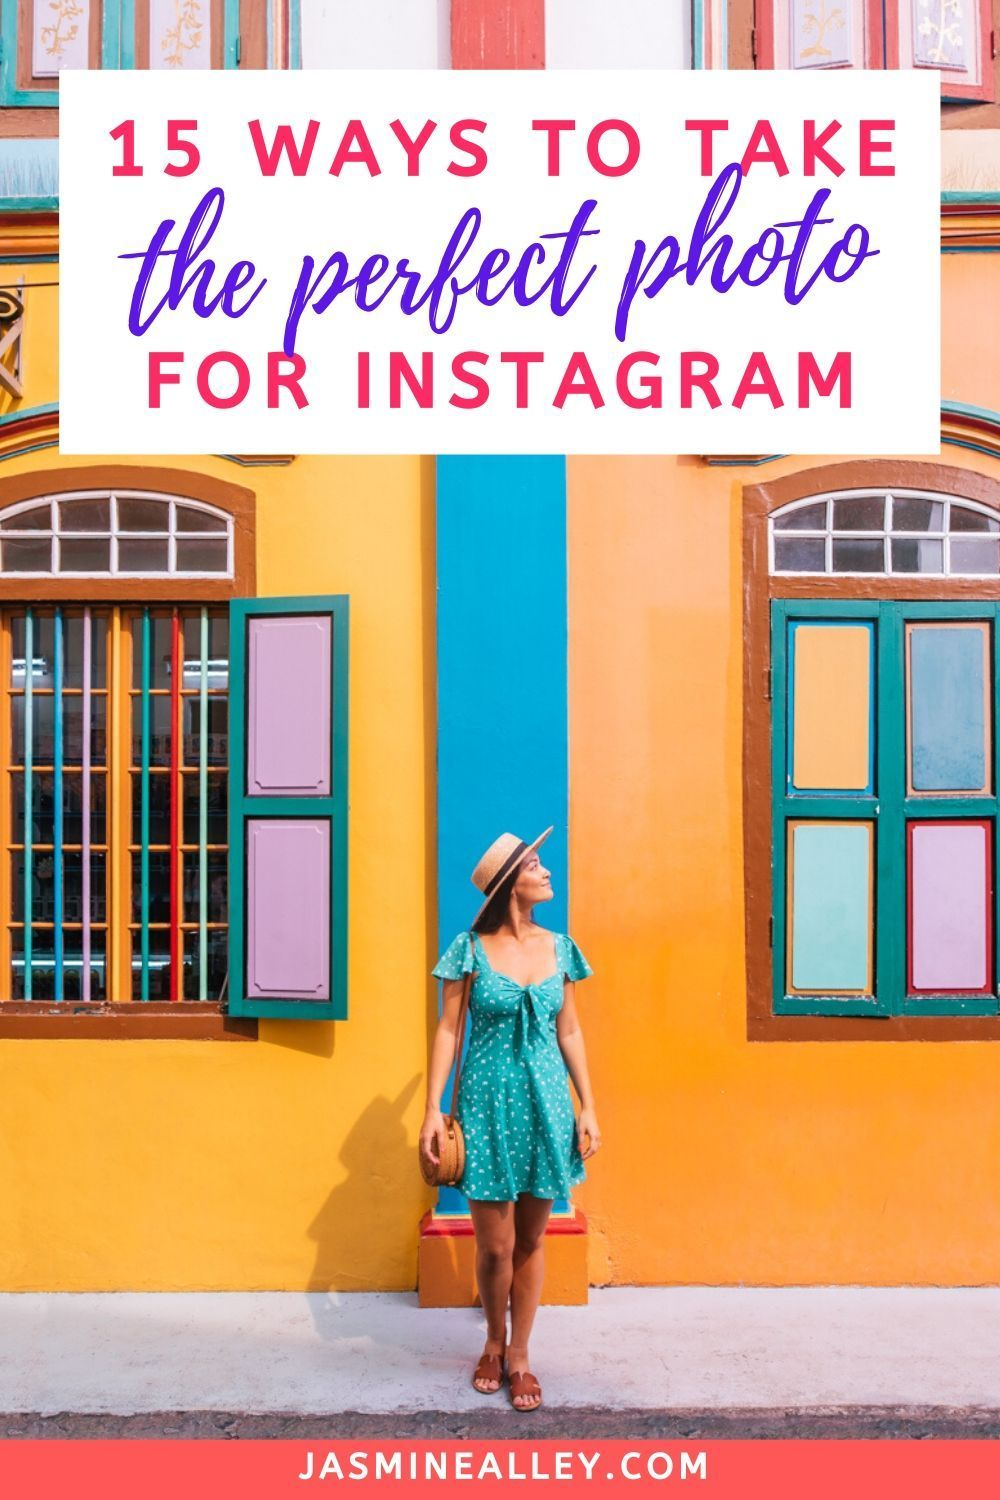 15 Instagram Photo Tips How to Take an Instagram Photo